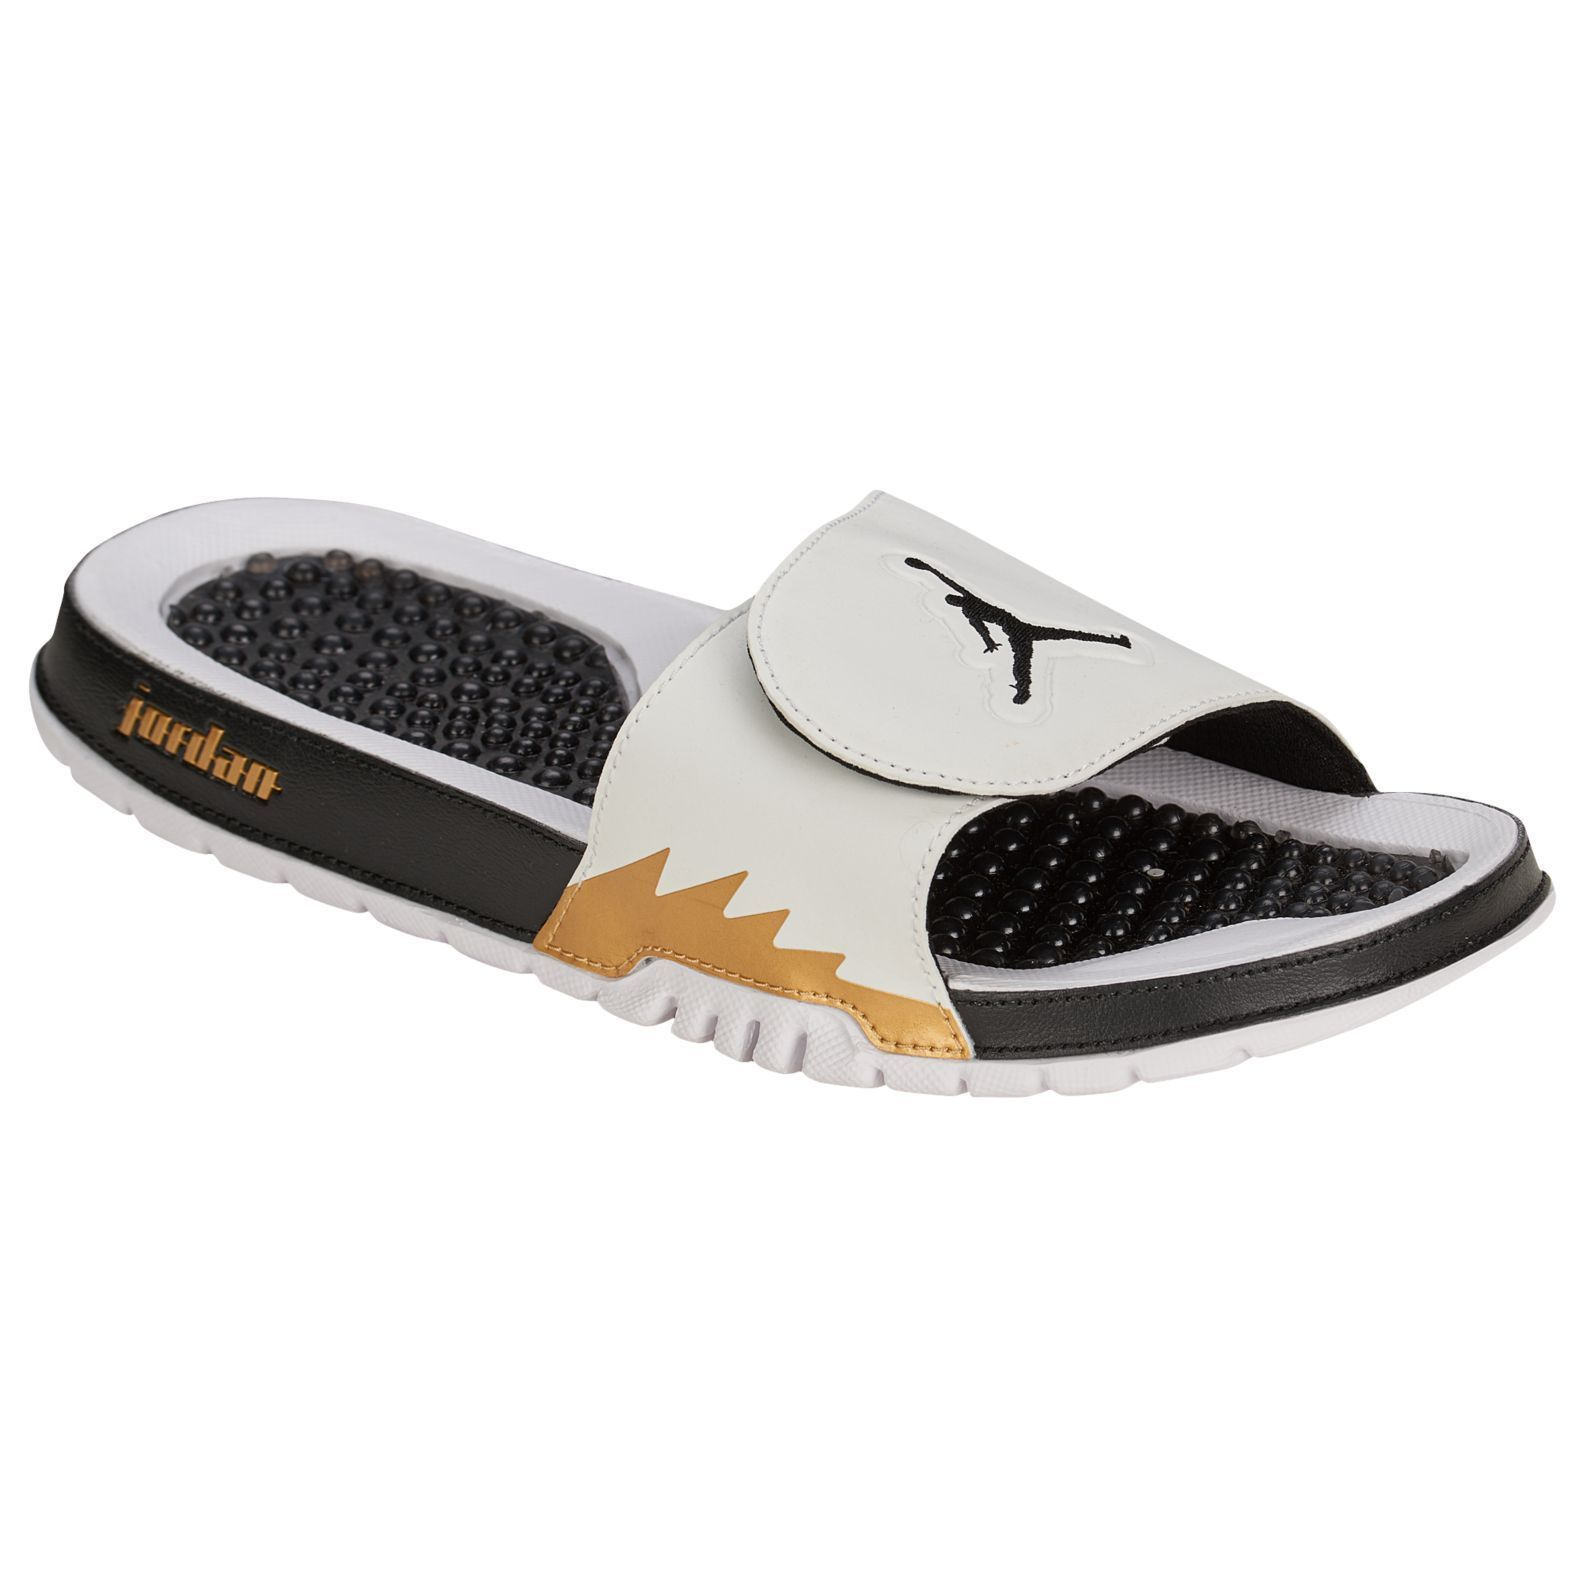 Nike Air Jordan Mens Retro Hydro Slides V 5 Retro Shoes Flip Flops Size 13 NIB